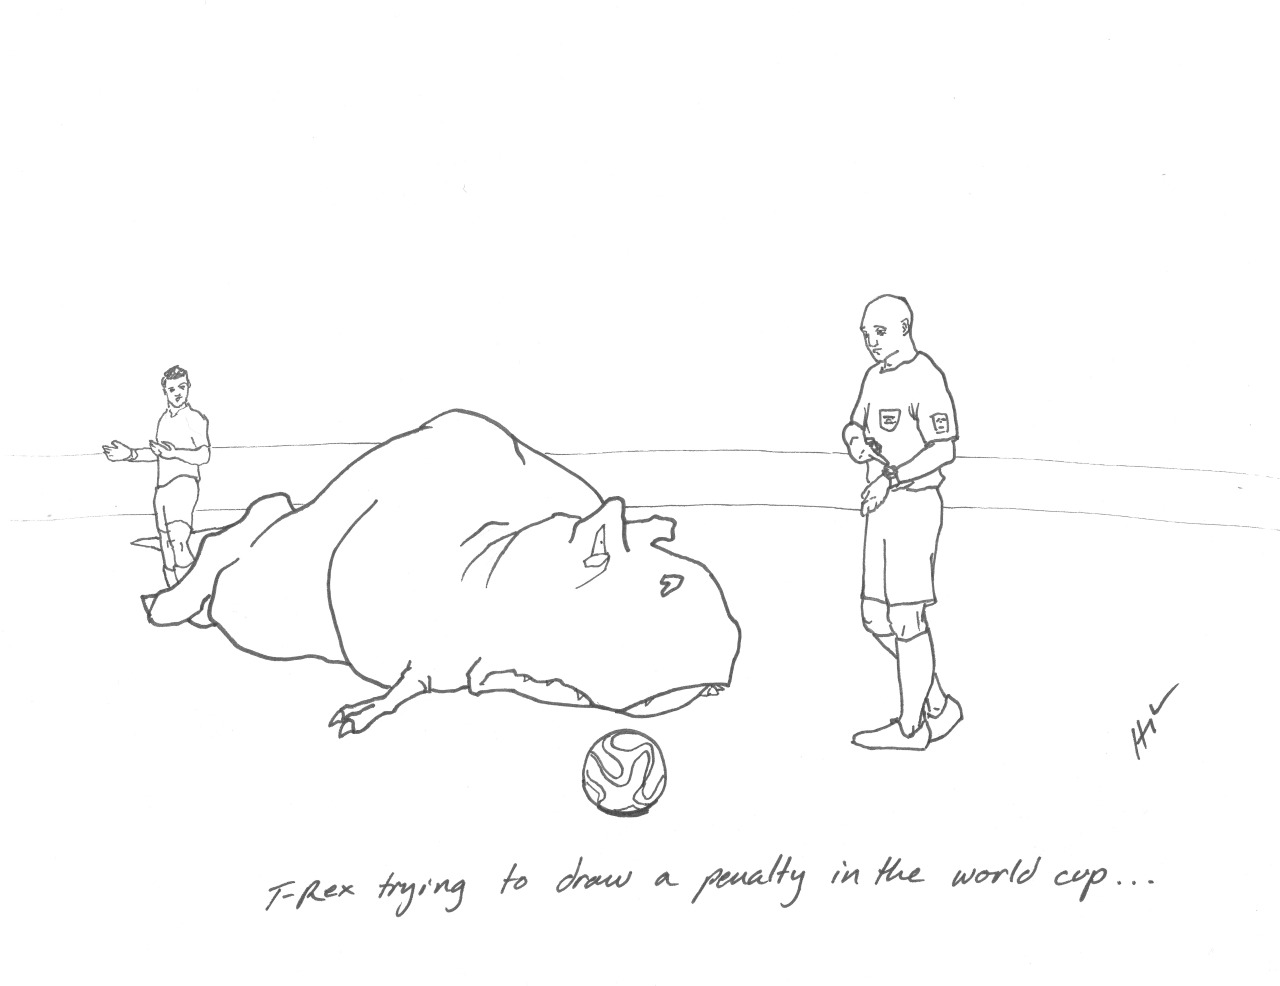 T-Rex trying to draw a penalty in the World Cup… #TRexTrying #worldcup #worldcup2014